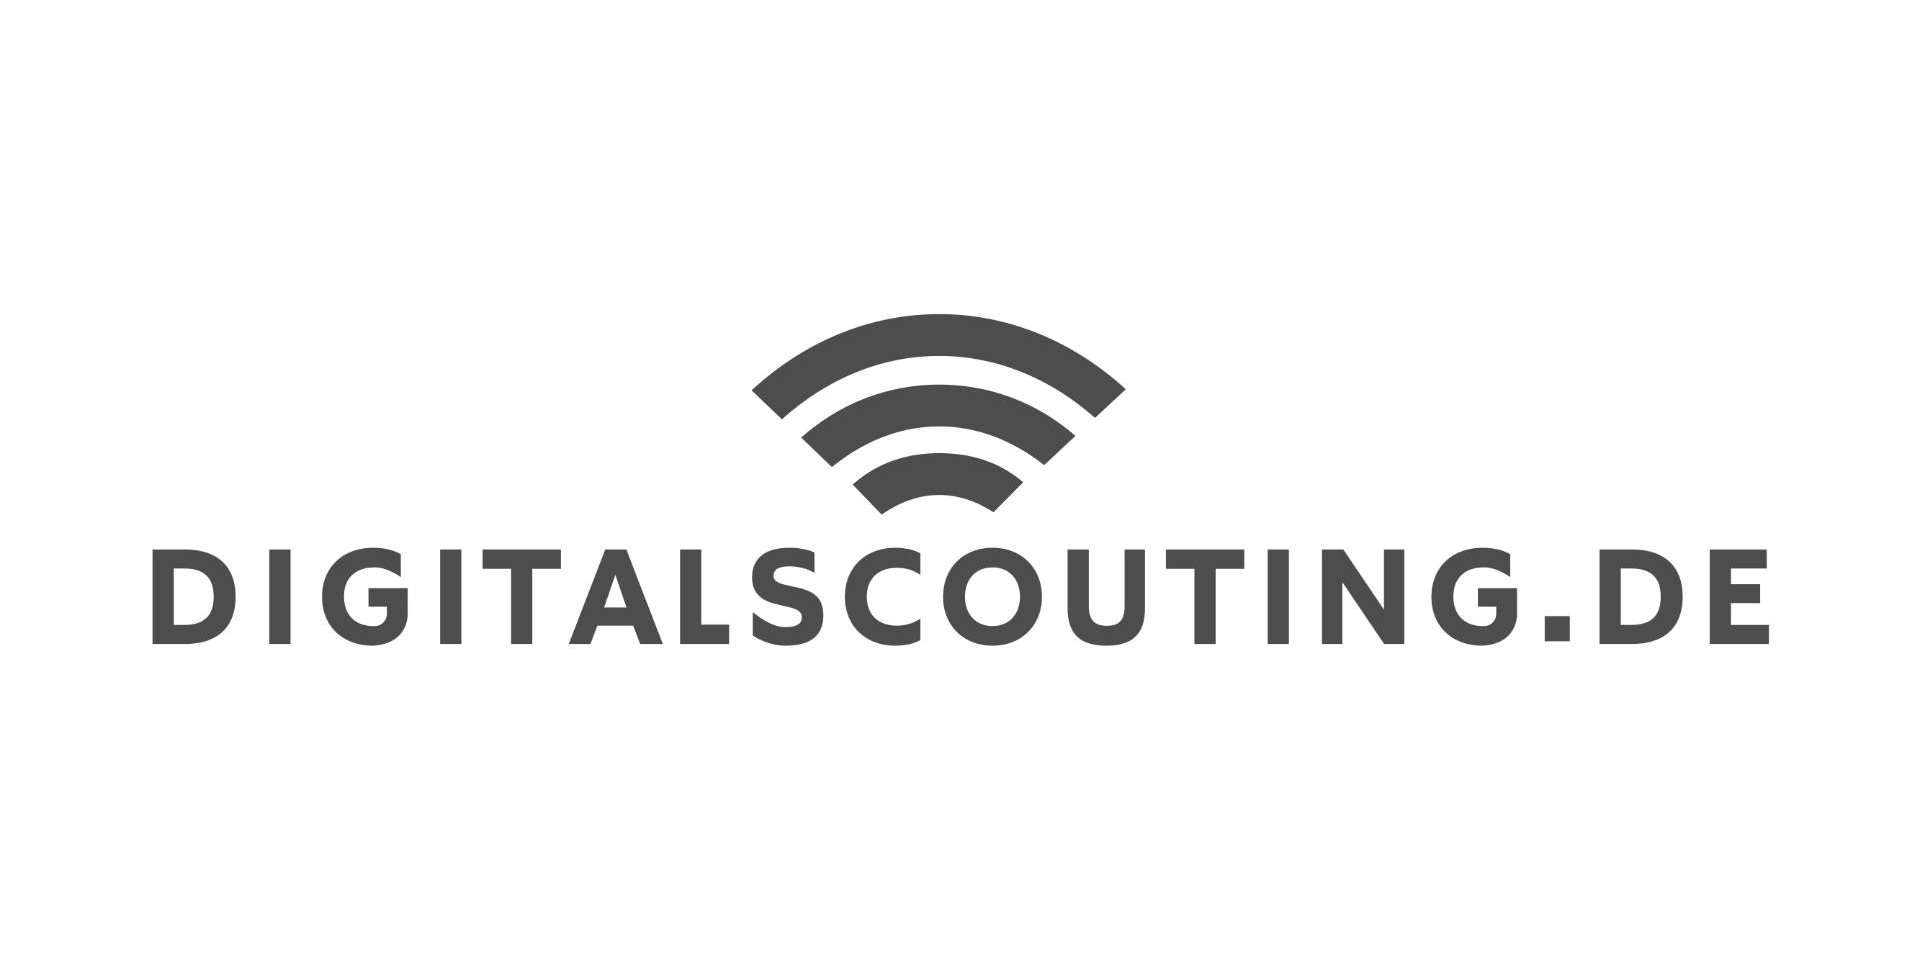 Digitalscouting